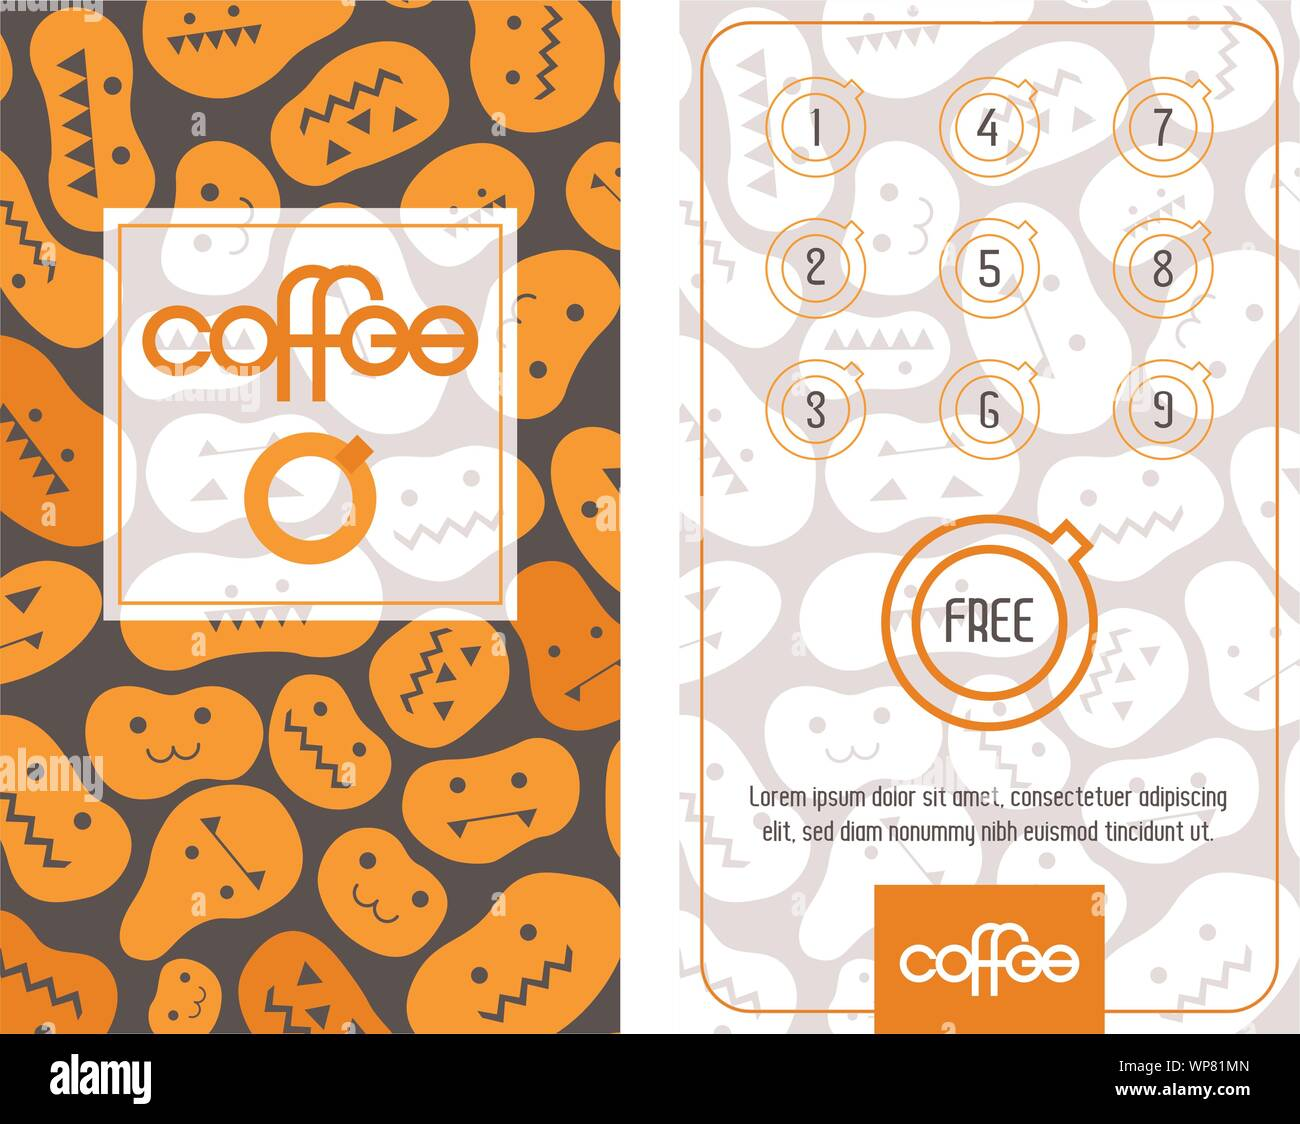 Loyalty Coffee Card Template In Halloween Mood With Curved Pumpkins Get One Free Stock Vector Image Art Alamy